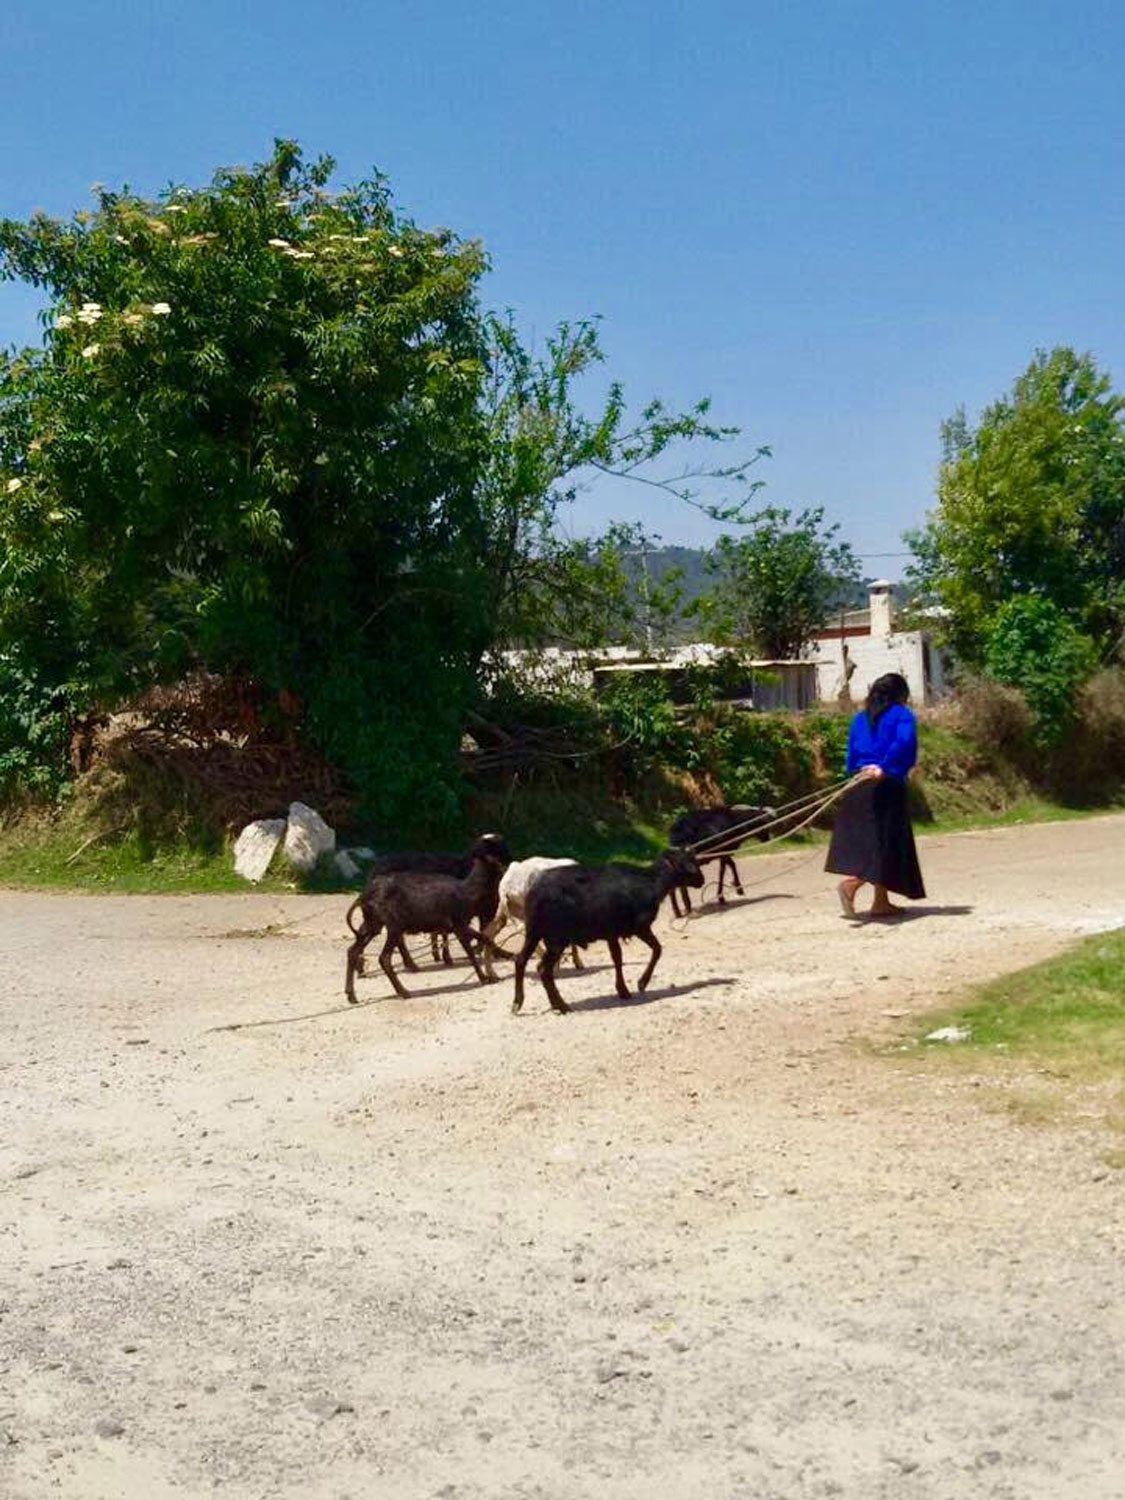 We saw many village women taking goats to pasture. Below, women in goat hide skirts with long fibre.